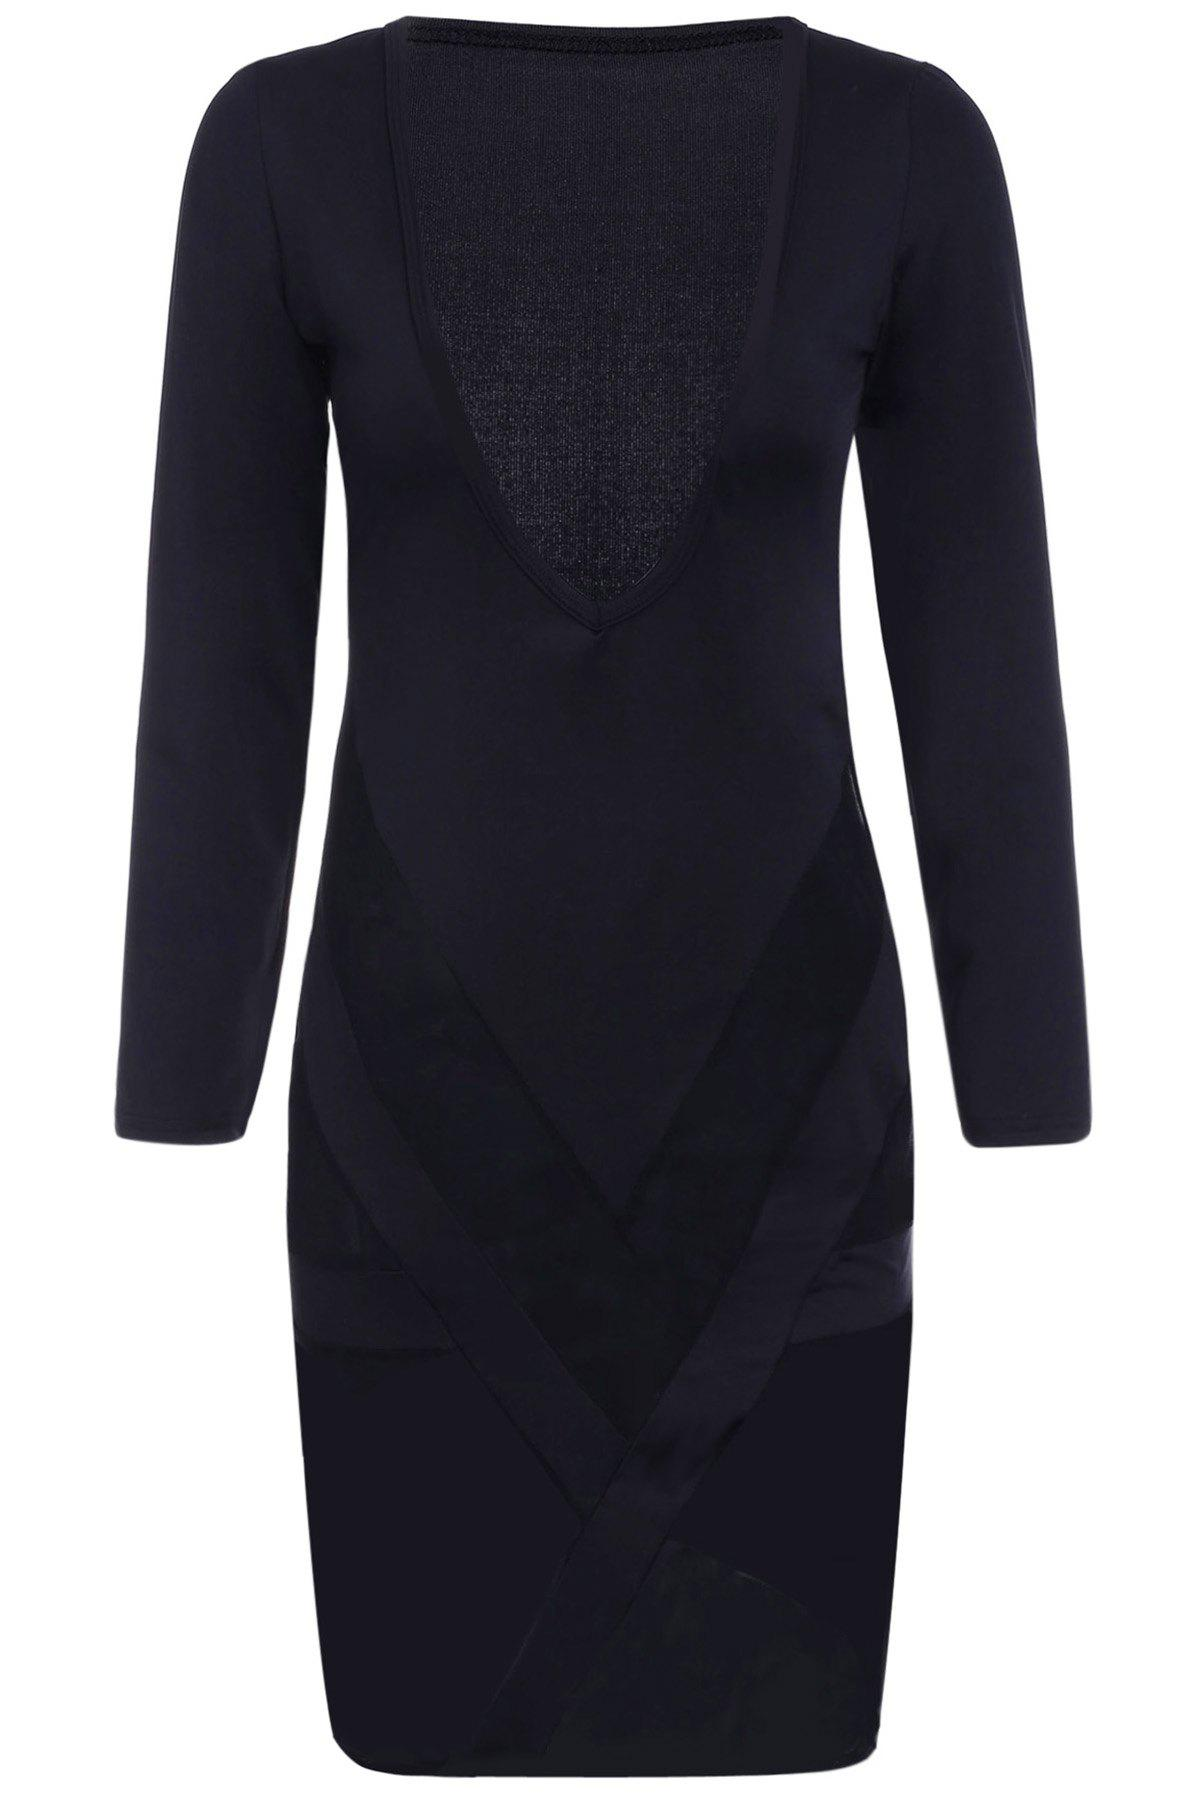 Sexy Plunging Neck Long Sleeves Bodycon See-Through Women's Dress - BLACK S